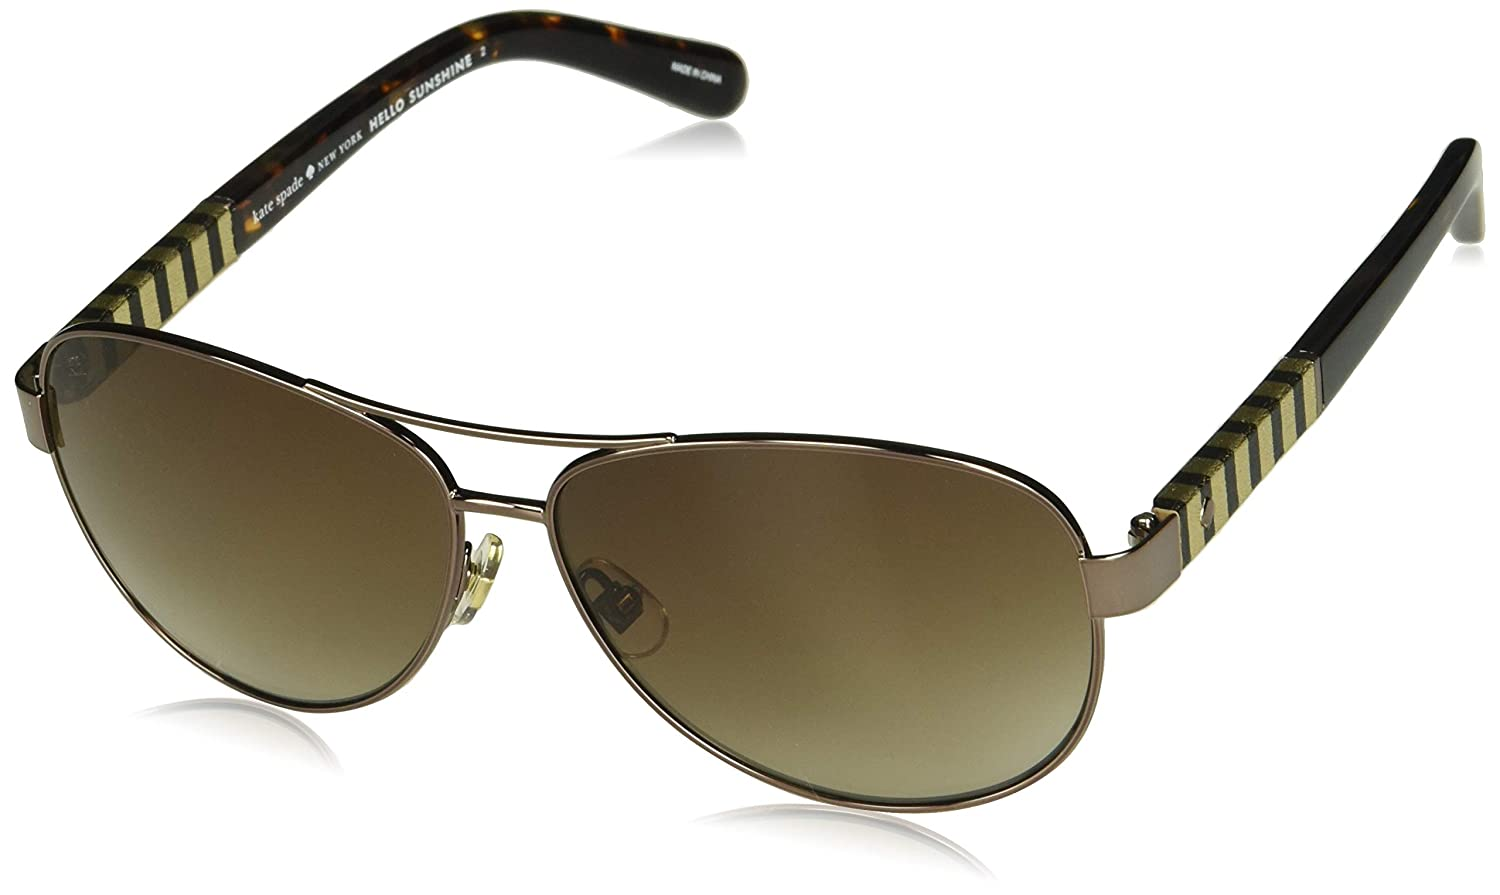 9862de111c Amazon.com  Kate Spade Women s Dalia s Us Aviator Sunglasses BRWN HVNA 58  mm  Clothing